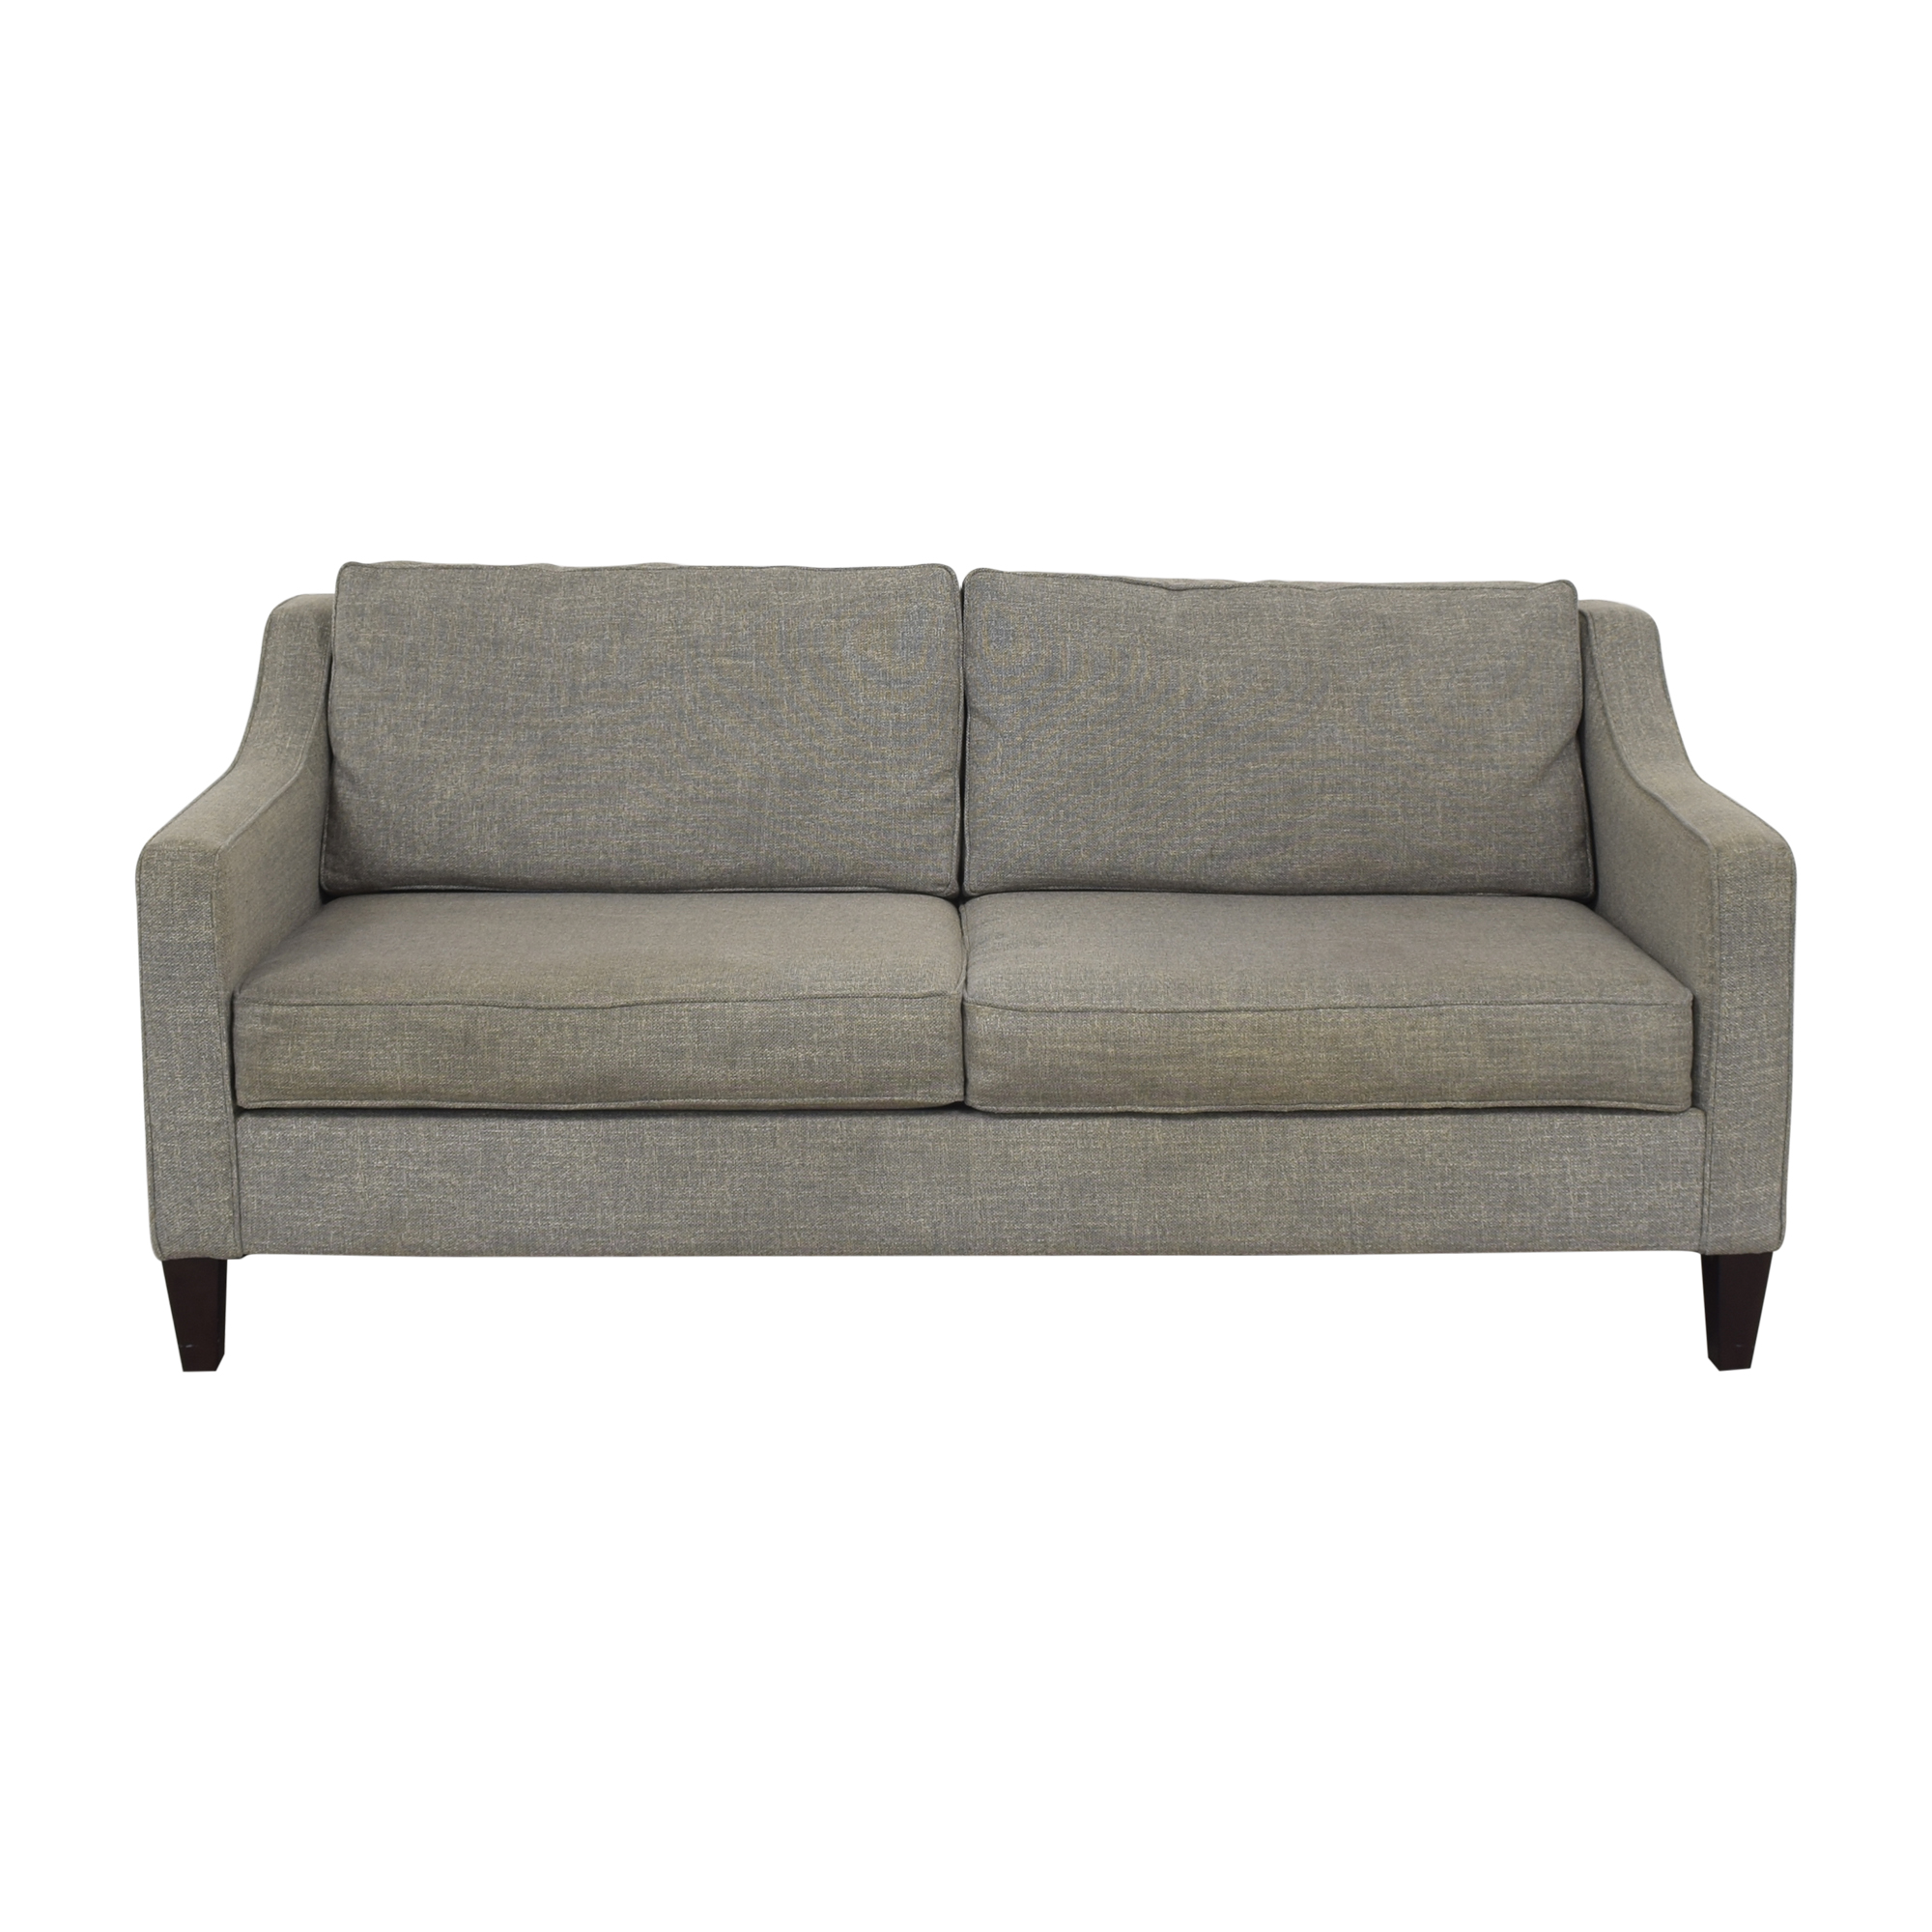 shop West Elm West Elm Paidge Sofa online